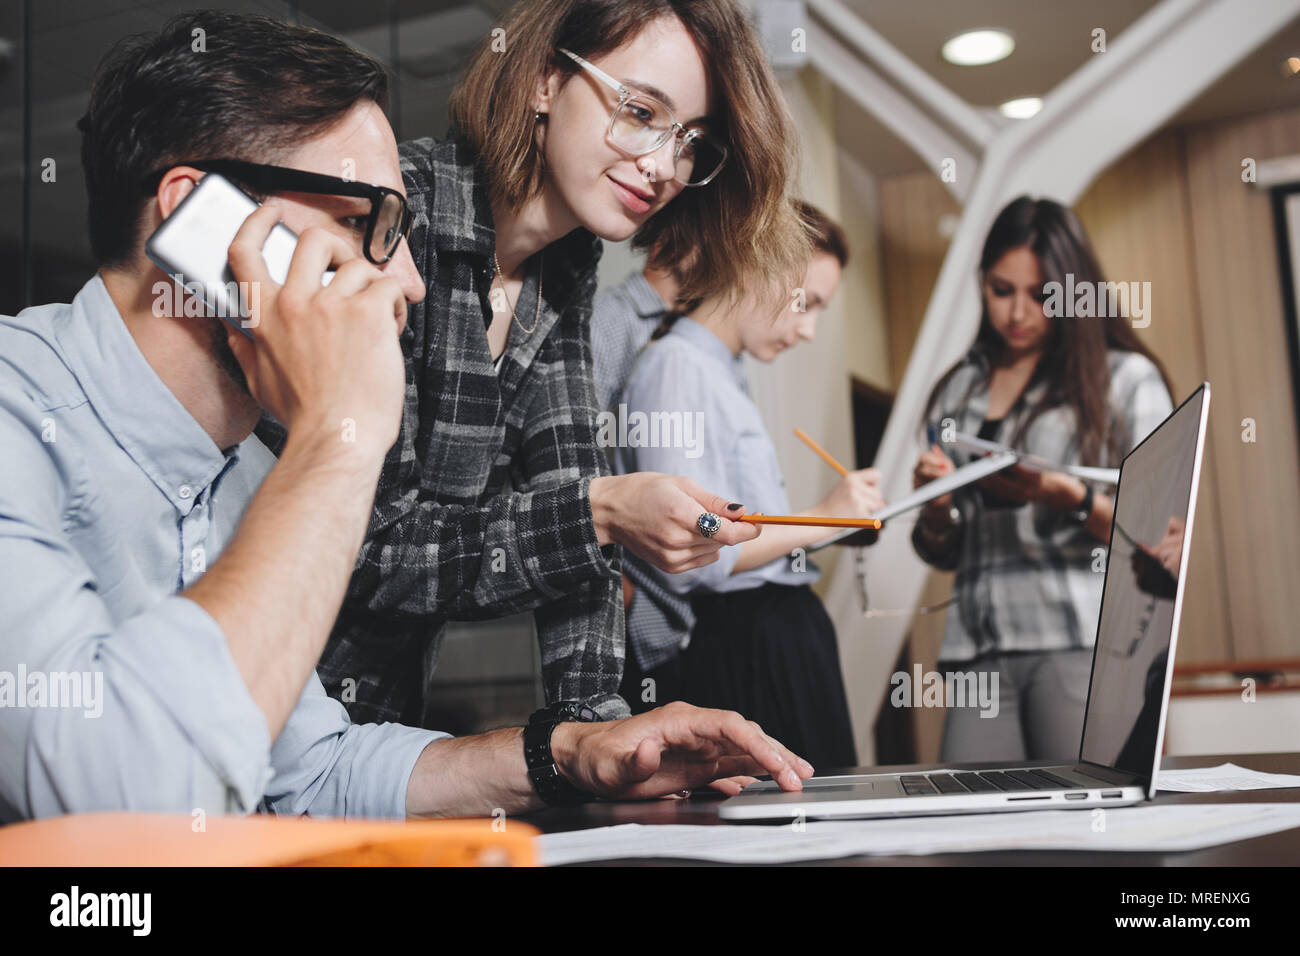 Teamwork concept. Coworking people work together in loft office. Bearded businessman talks on smartphone. Female manager holding presentation on lapto - Stock Image